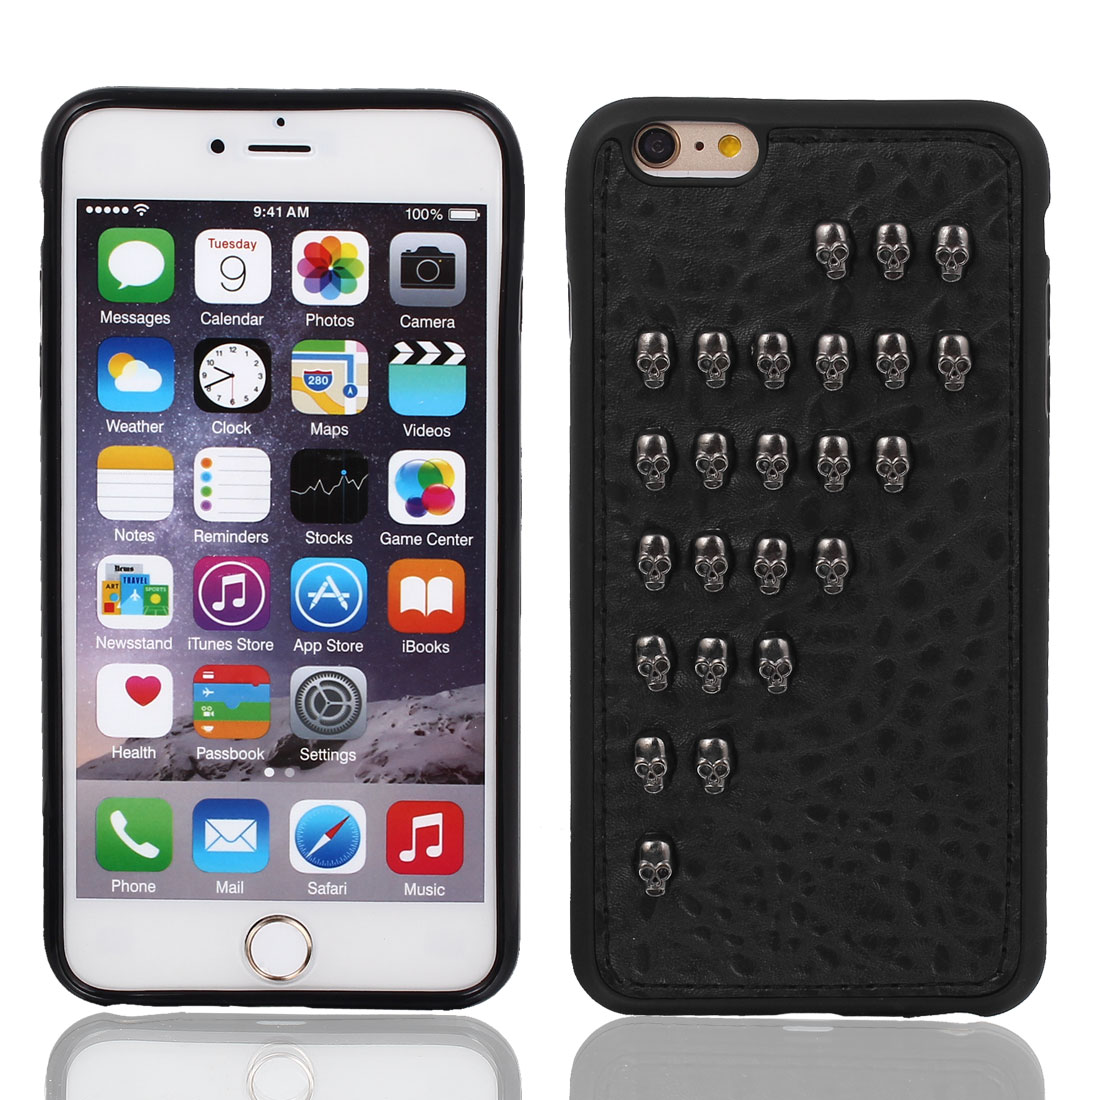 Faux Leather Protector Shell Skin Case Cover Black for Apple iPhone 6 Plus 5.5""